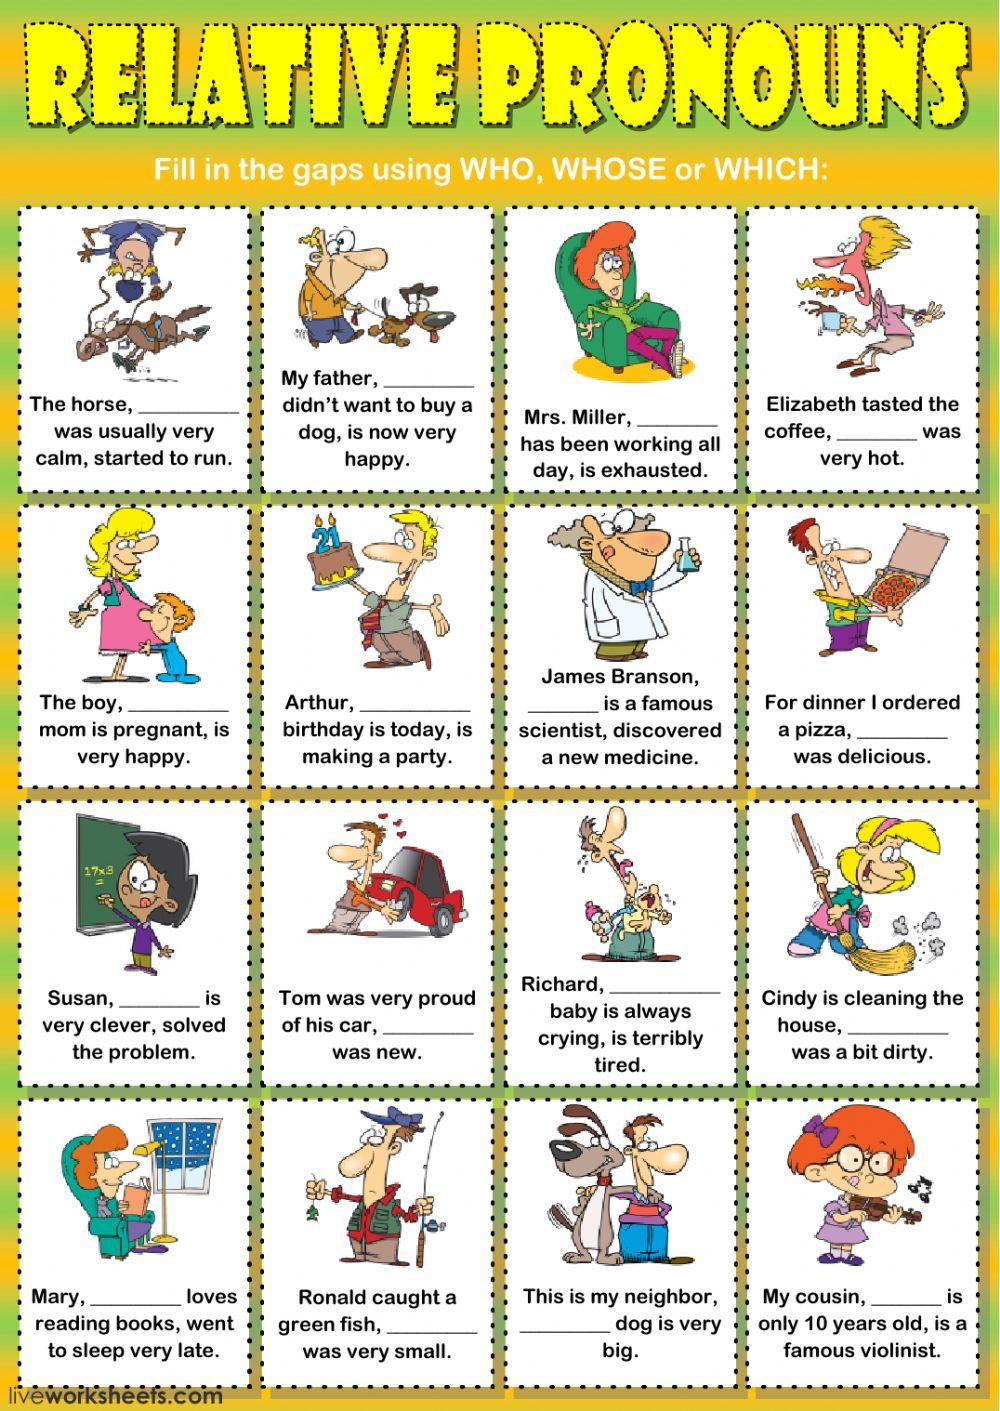 Relative pronouns interactive and downloadable worksheet